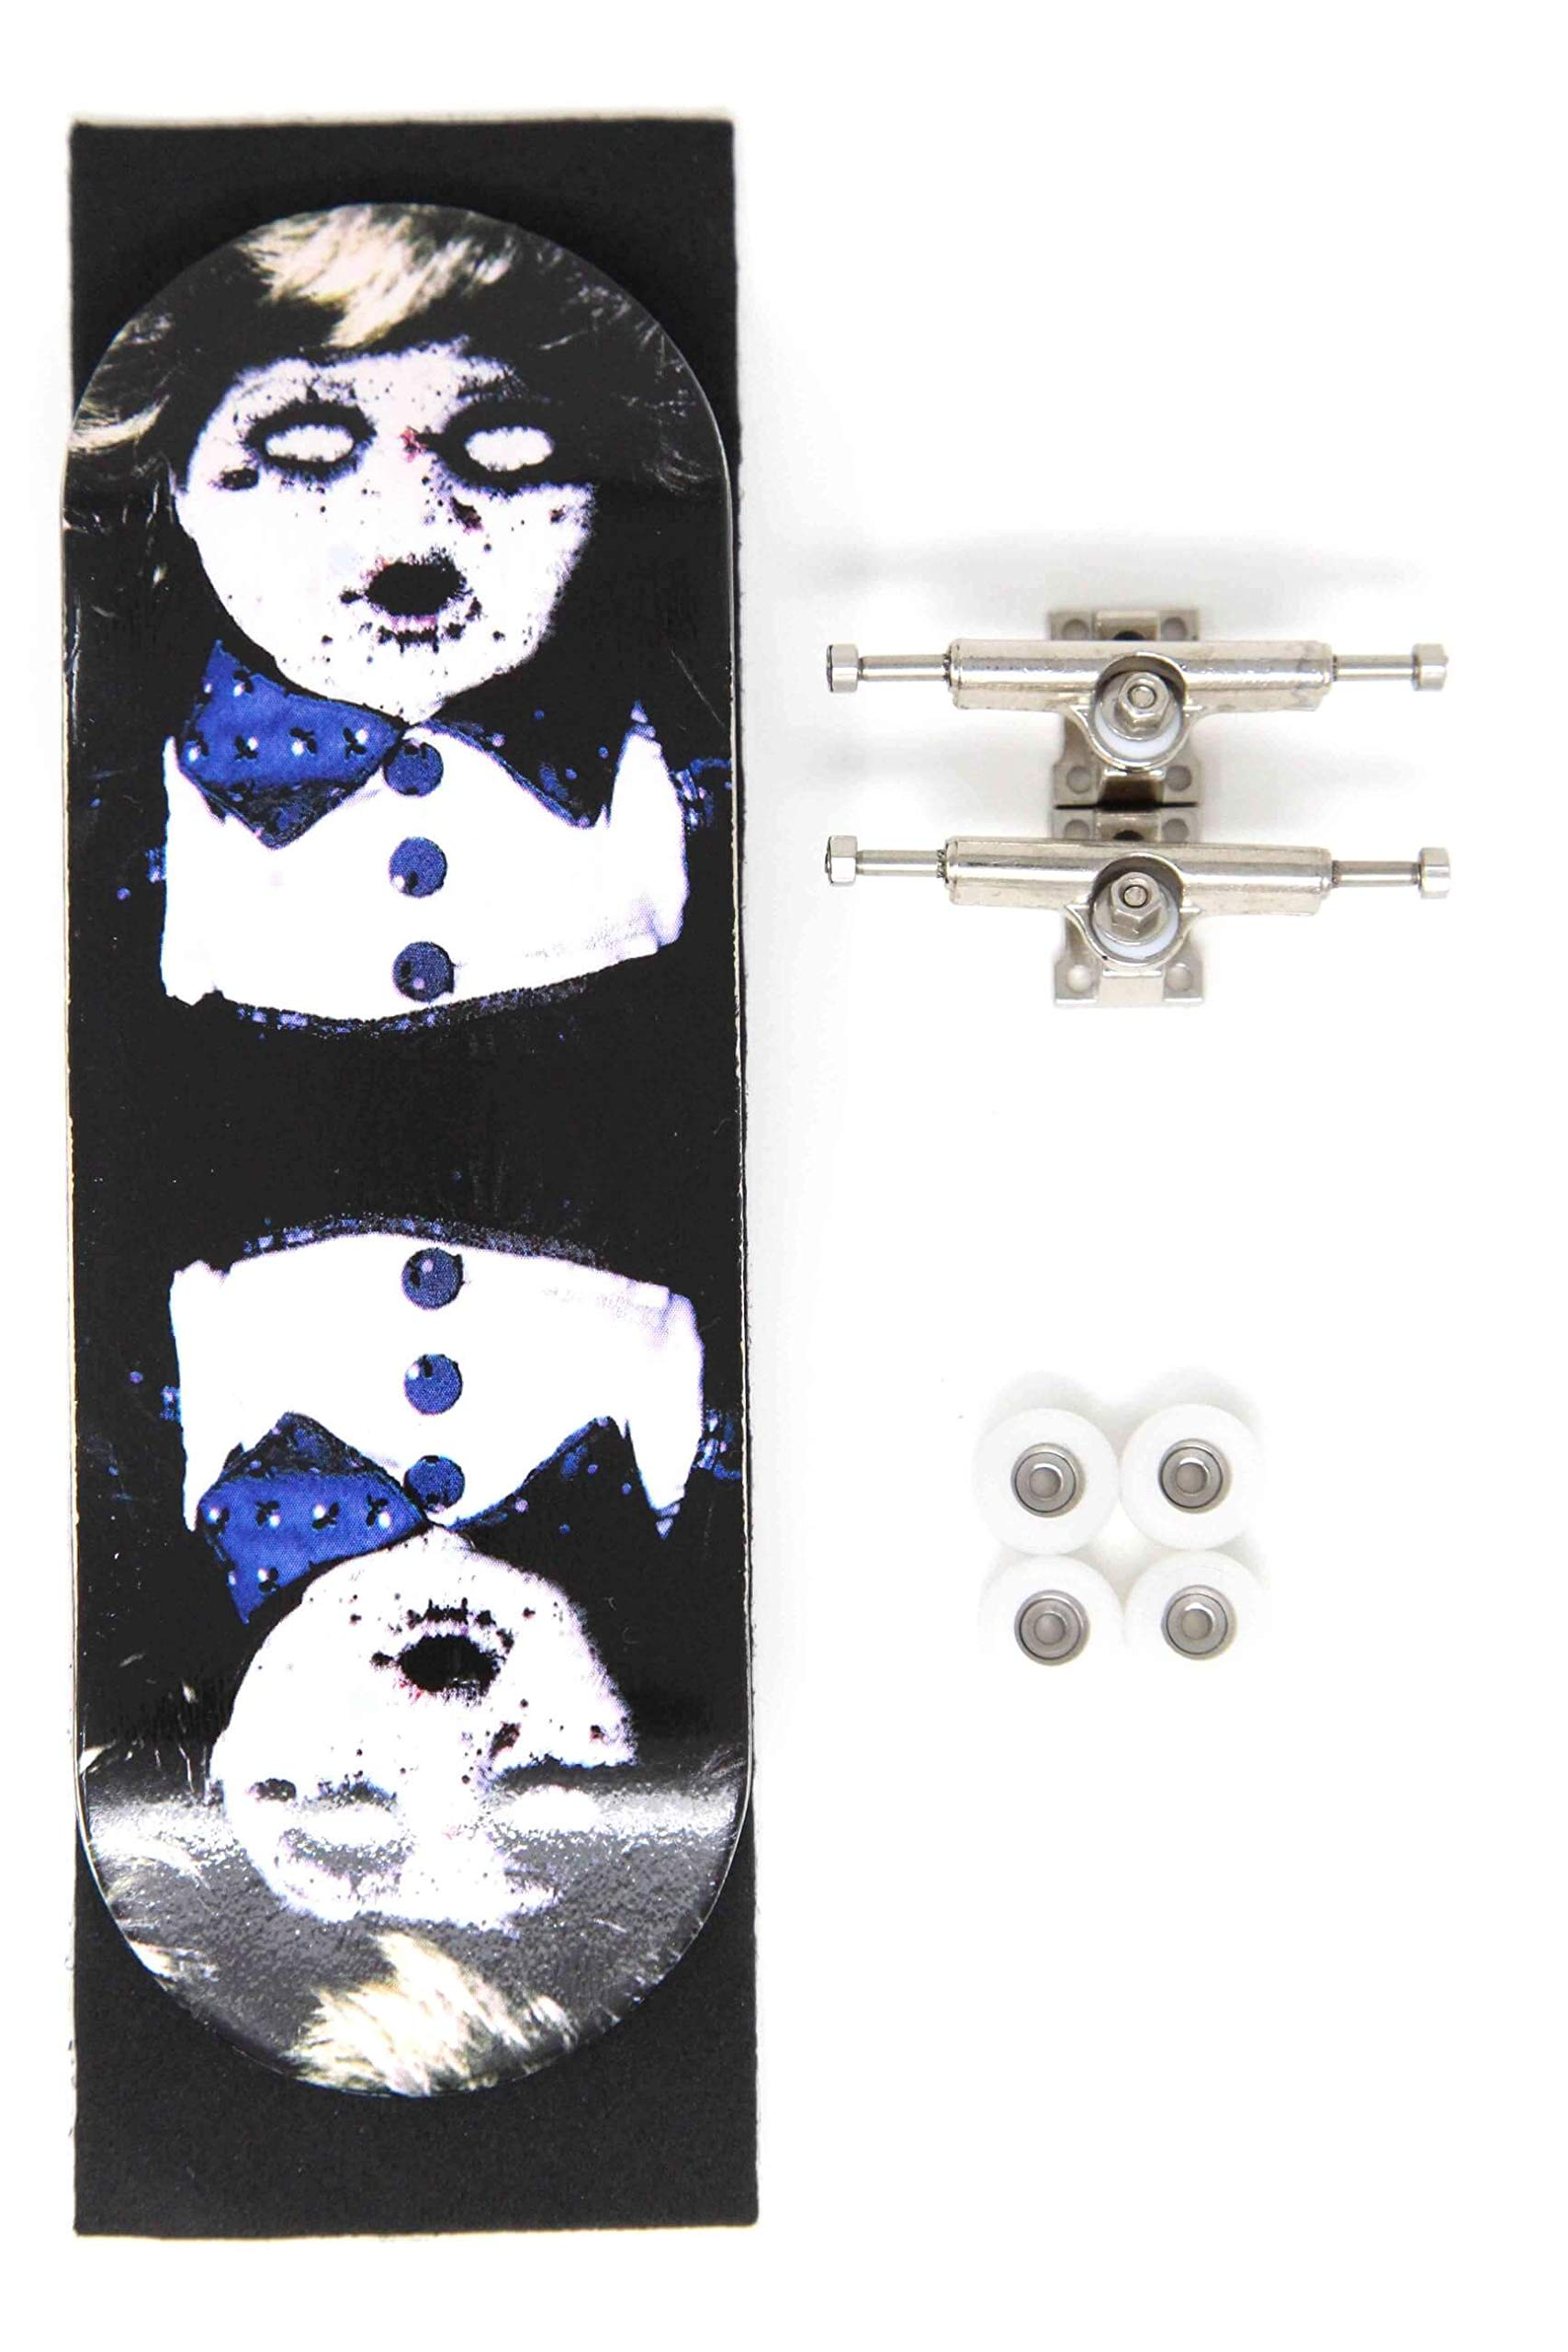 Skull Fingerboards Twins 34mm Complete Professional Wooden Fingerboard Mini Skateboard 5 PLY with CNC Bearing Wheels